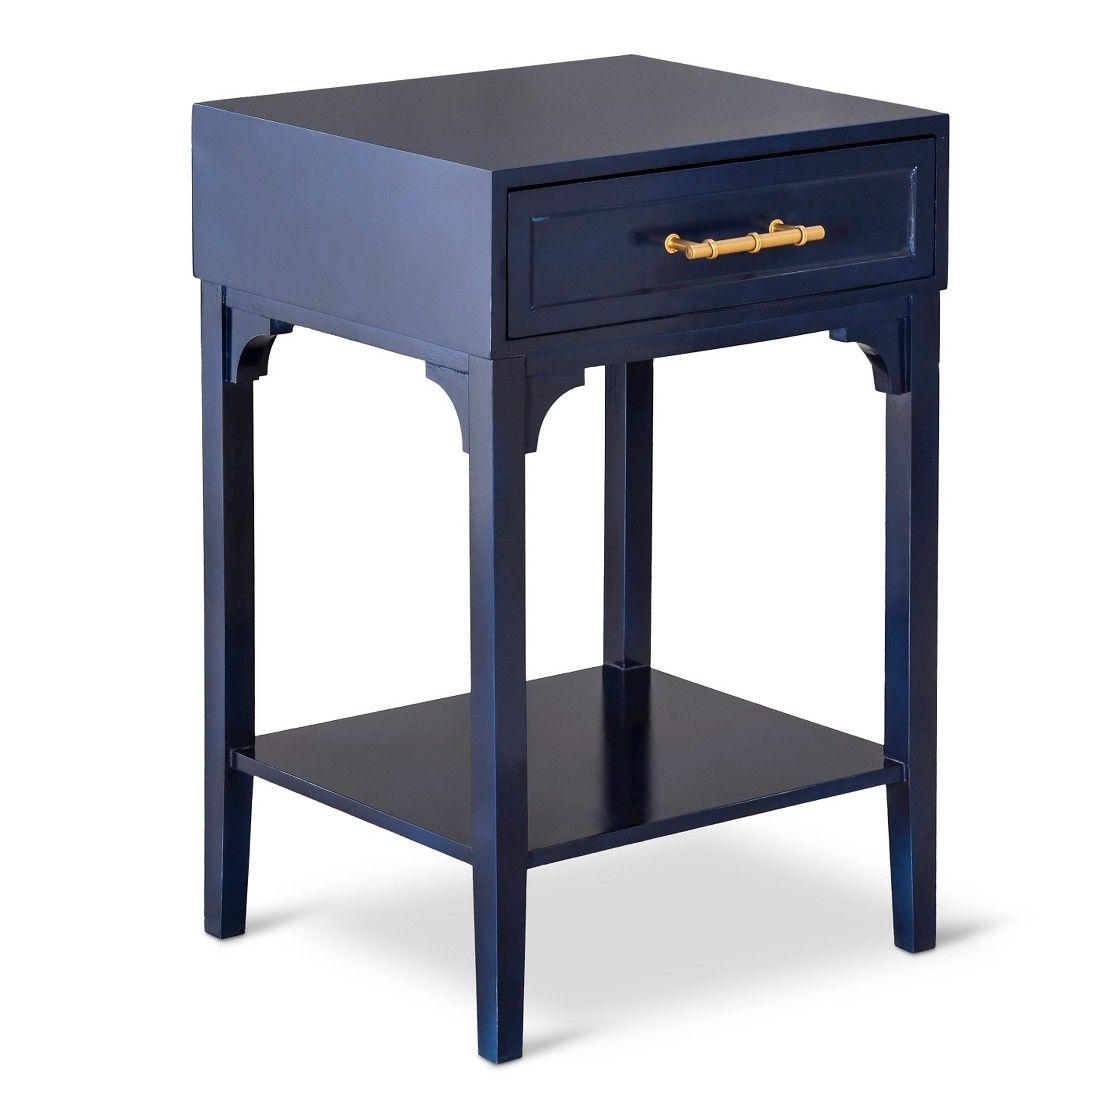 end table home decor misc needs navy accent dining room centerpieces ashley set carpet threshold industrial black mirrored nightstand rectangle drop leaf wood steel coffee tiffany